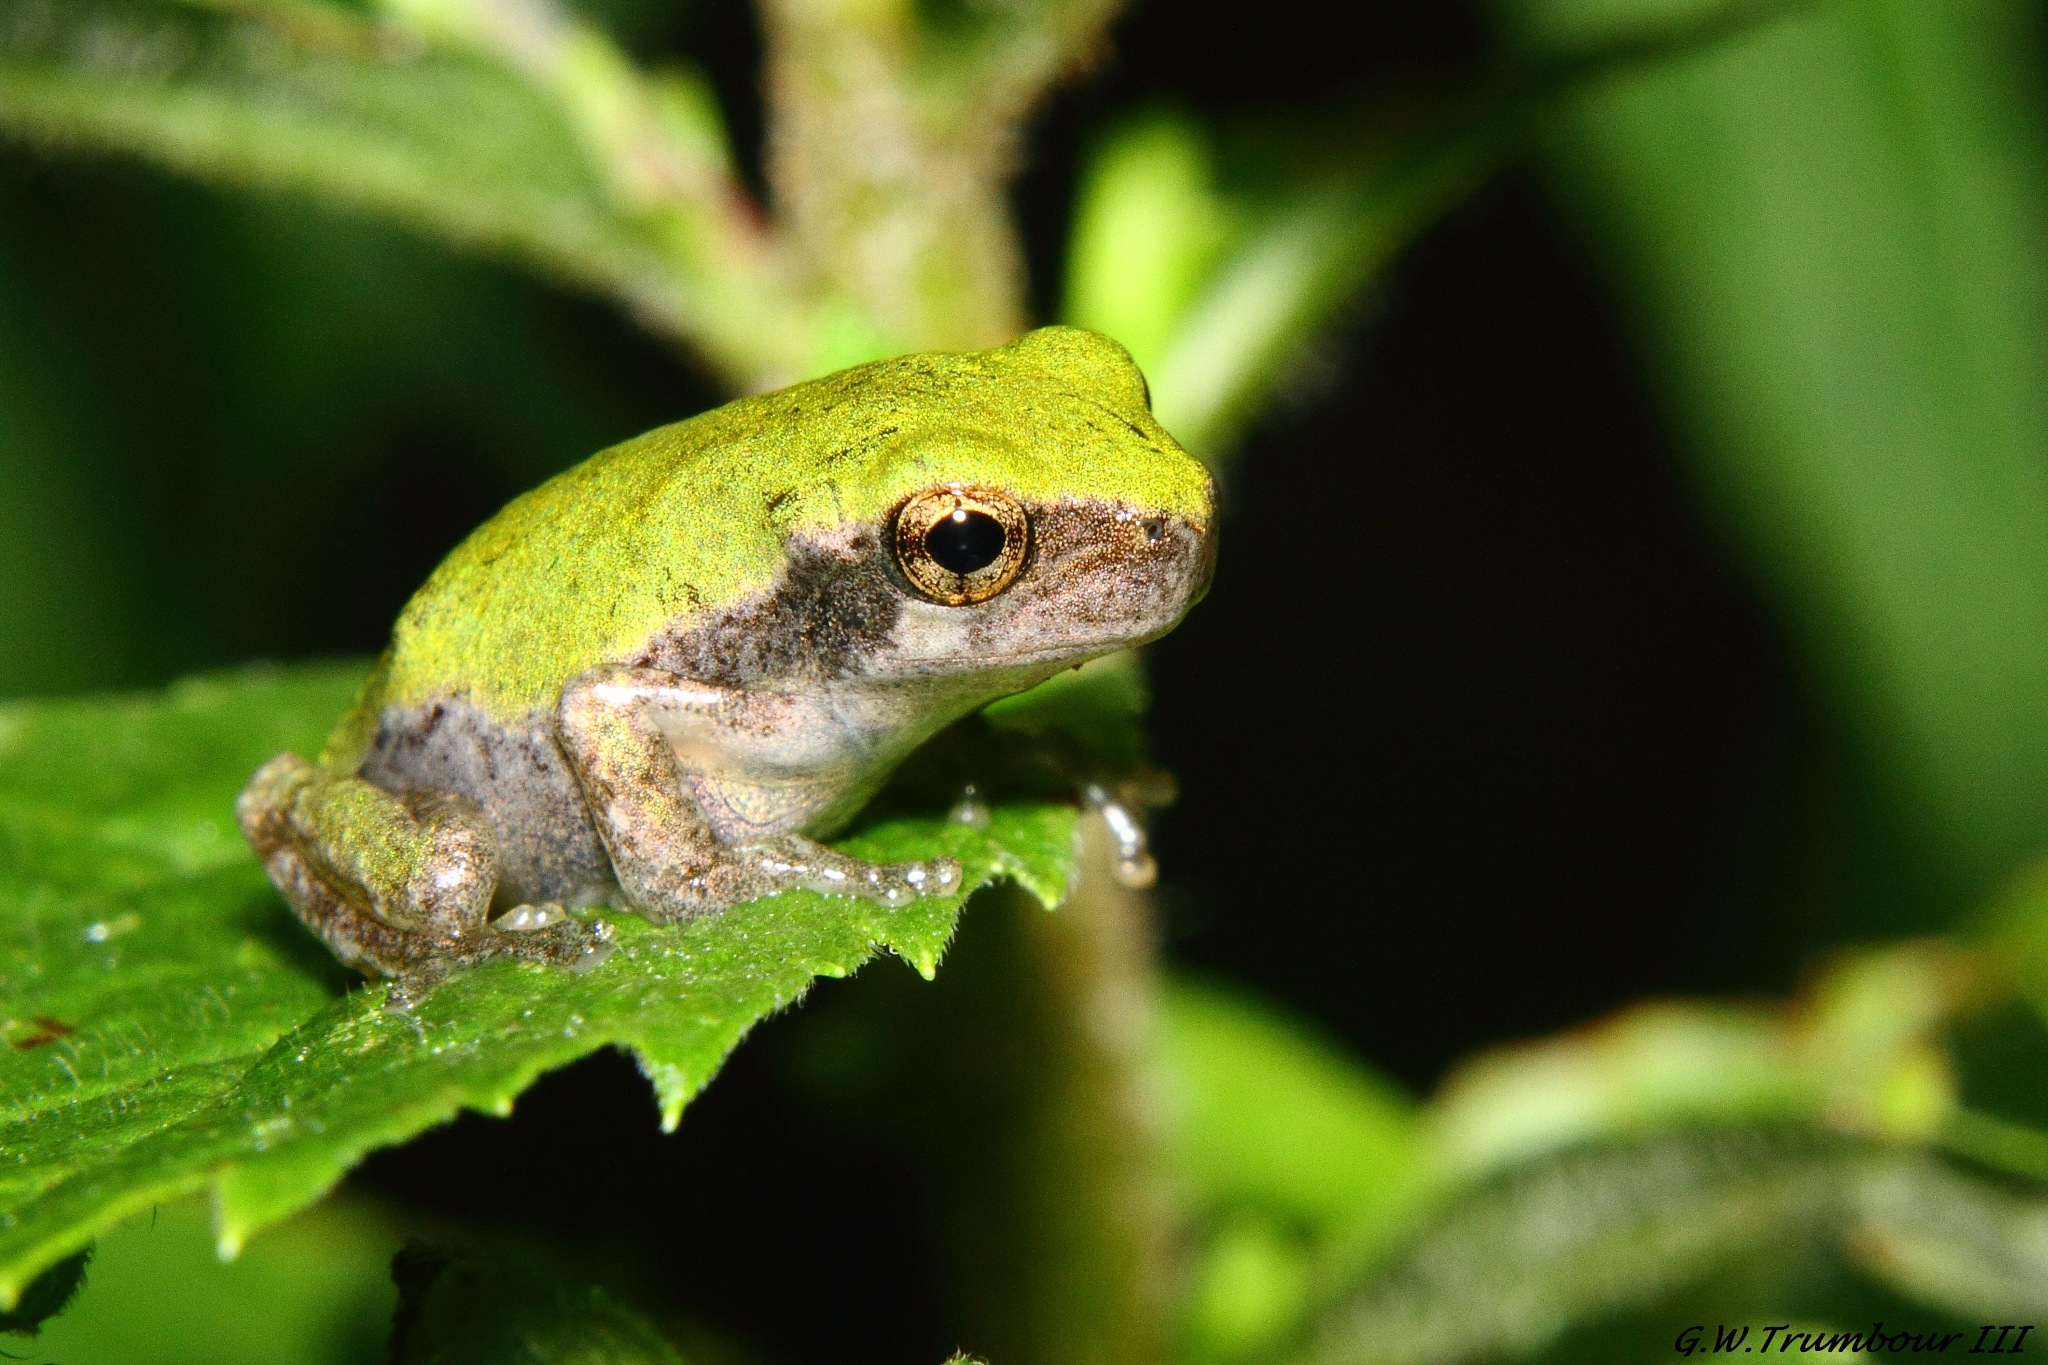 One tiny Frog by George W. Trumbour iii